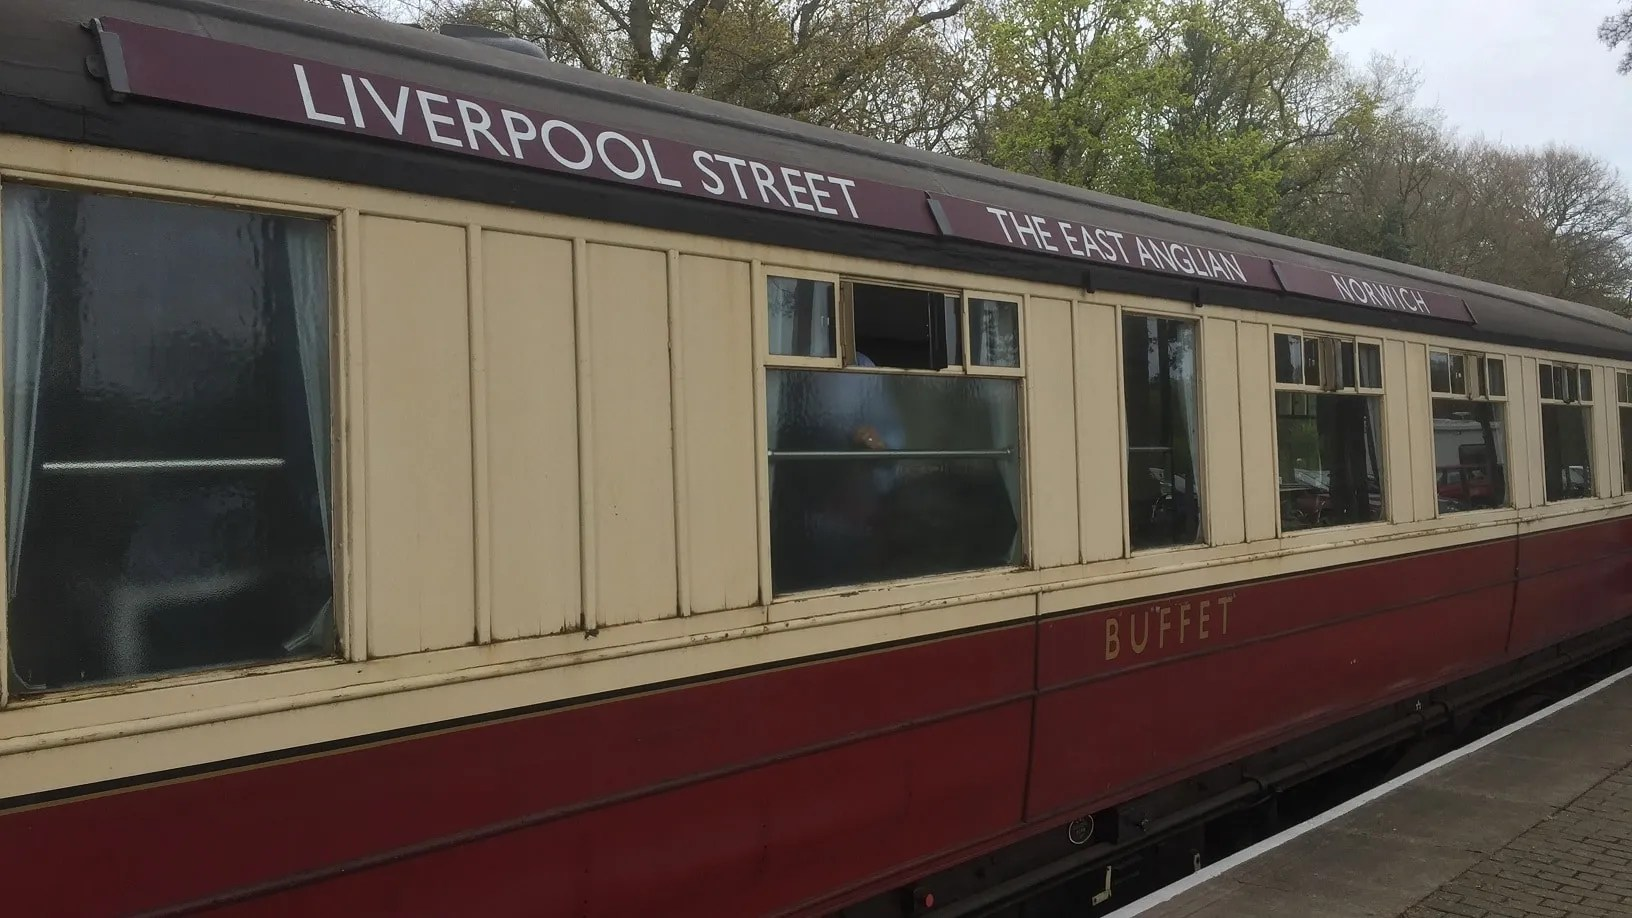 Gresley coach E9128E with The East Anglian carriage boards at the North Norfolk Railway